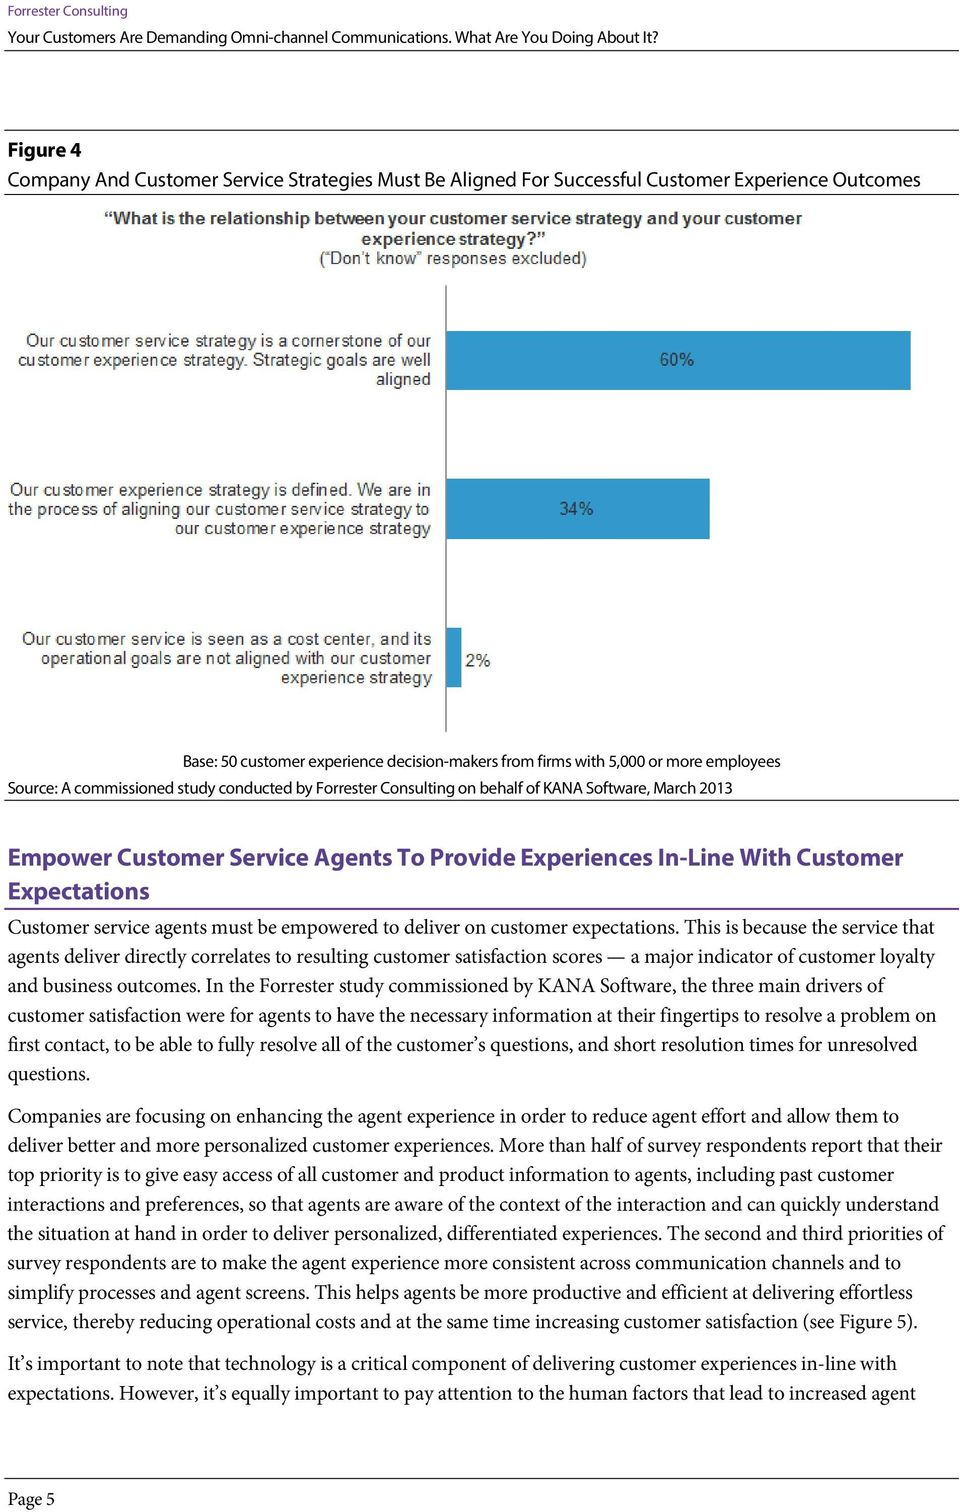 Customer service agents must be empowered to deliver on customer expectations.